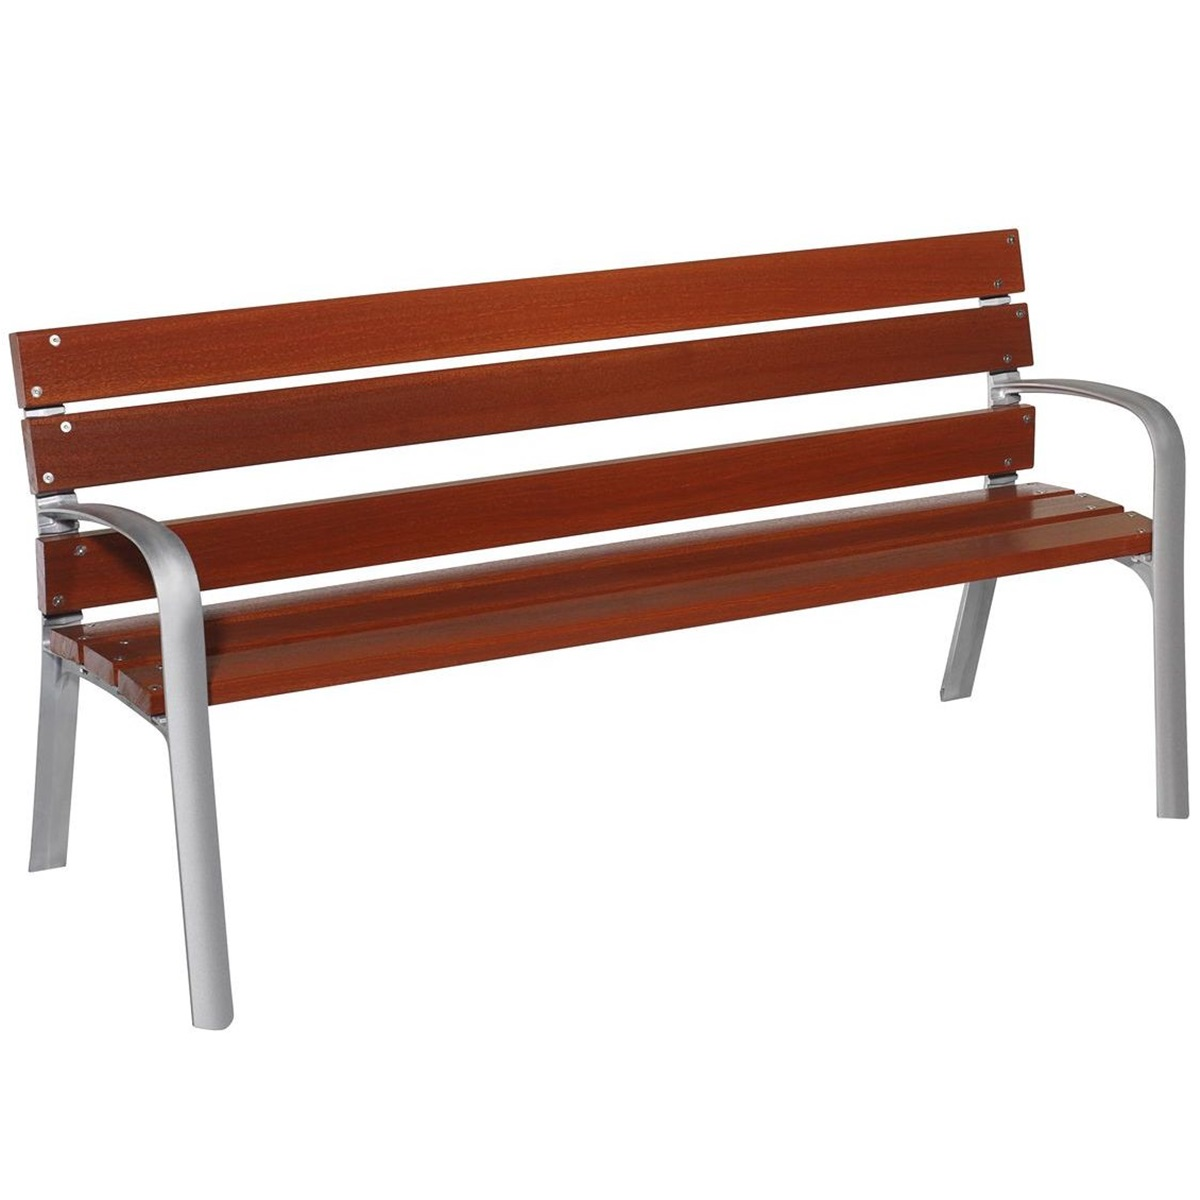 Modo Bench C-106-ALU zoomed